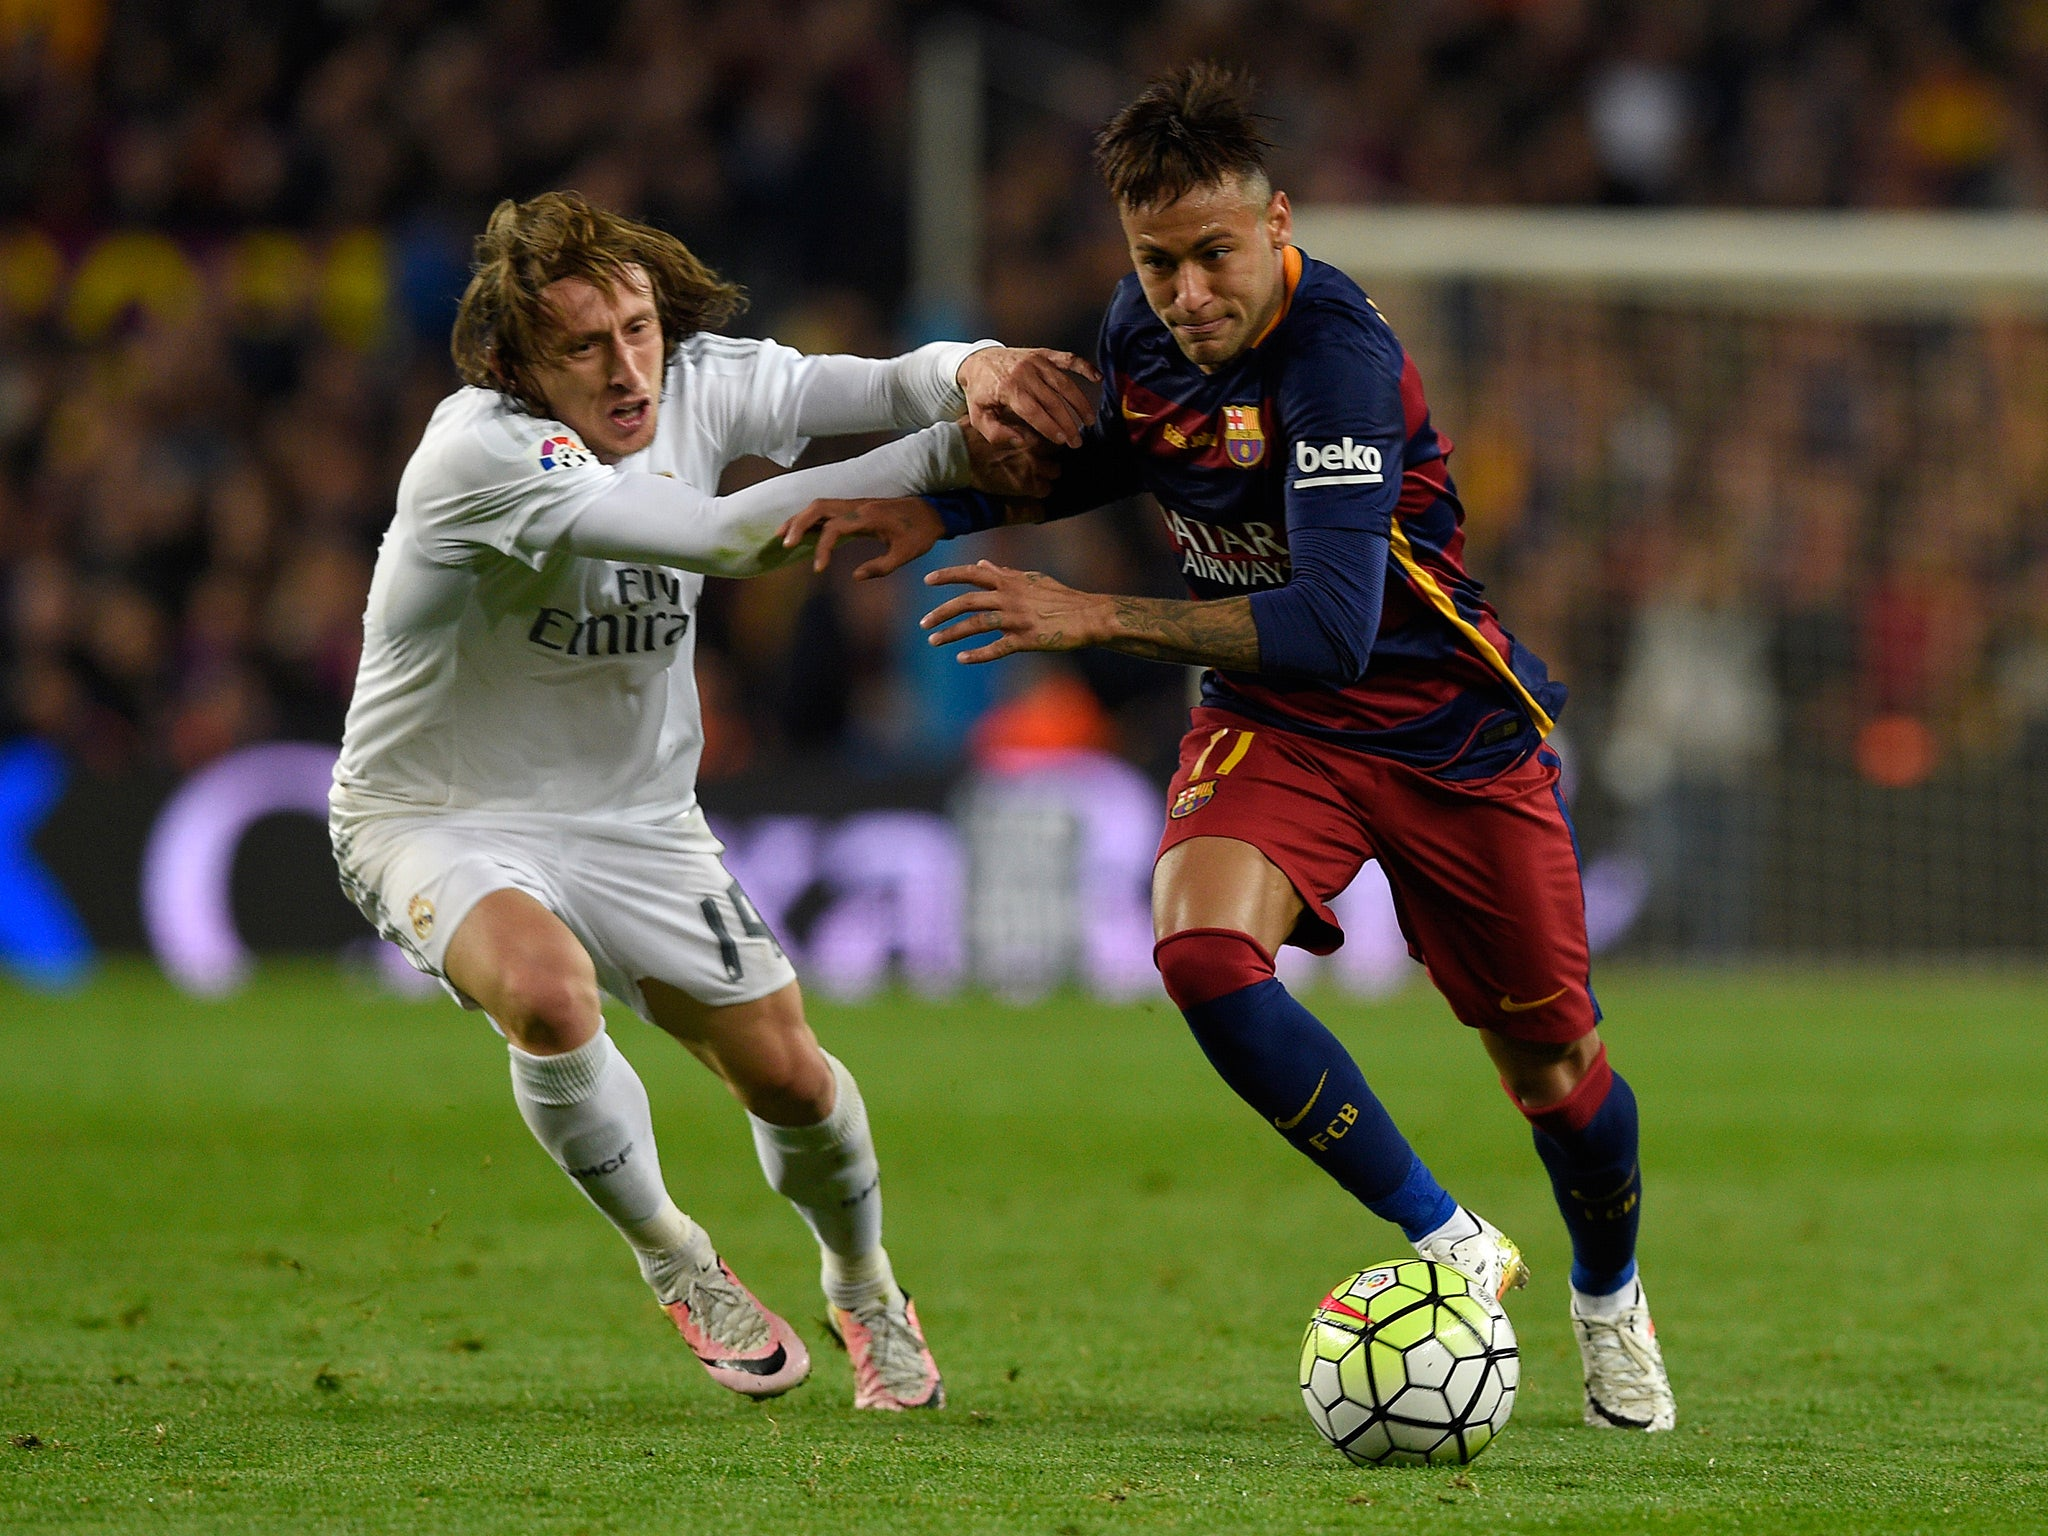 El Clasico Barcelona vs Real Madrid: What time does it start, what channel is it on, where can I watch it?